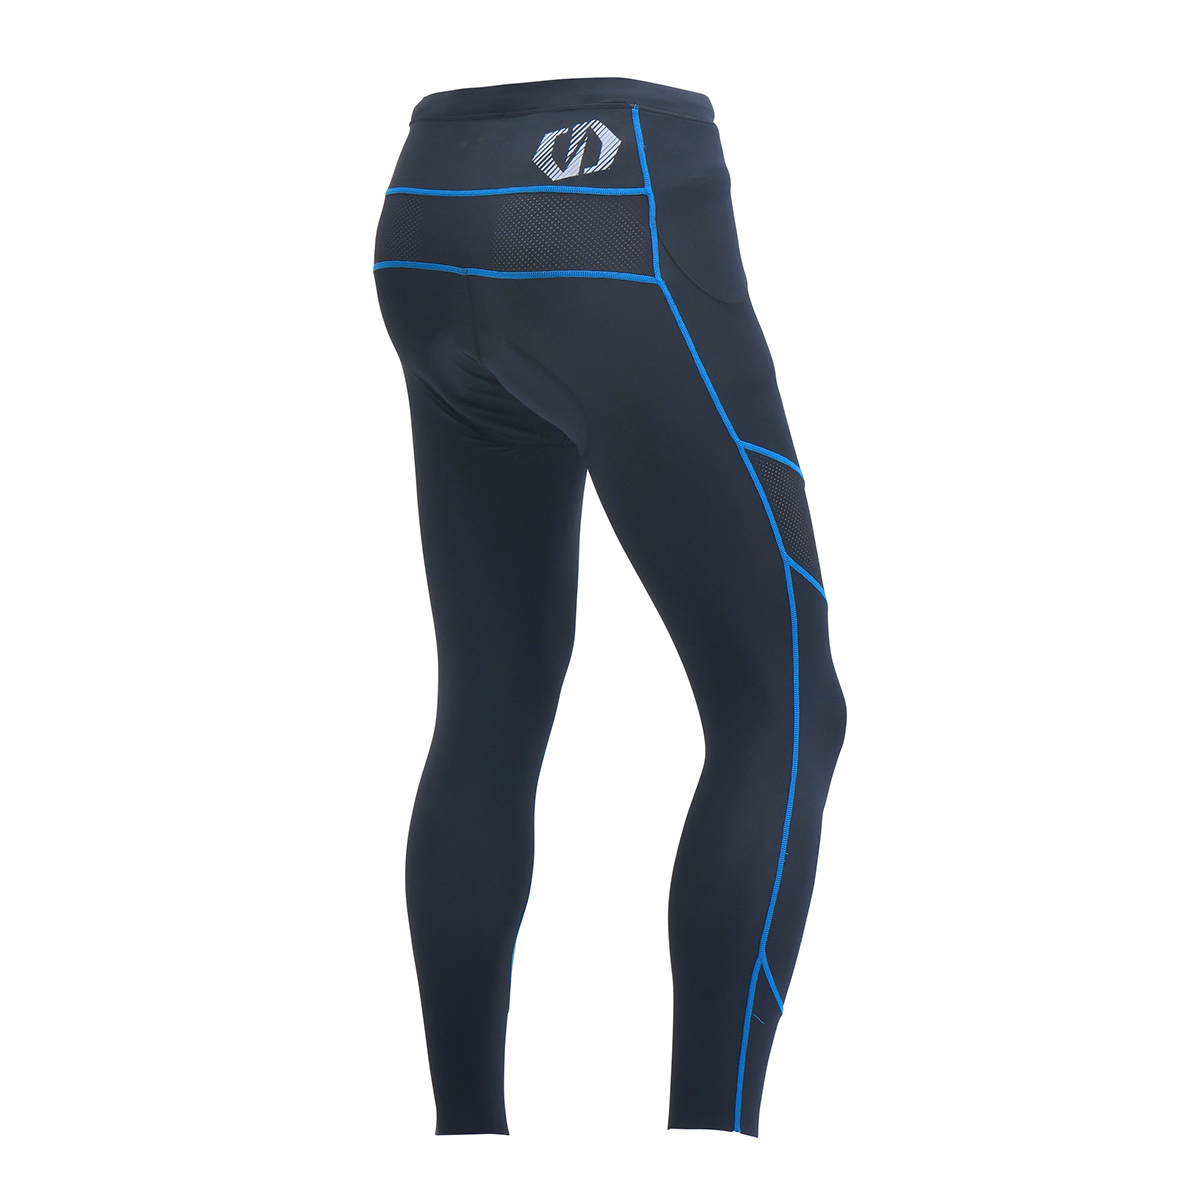 NEOFIT PANTS VENTED